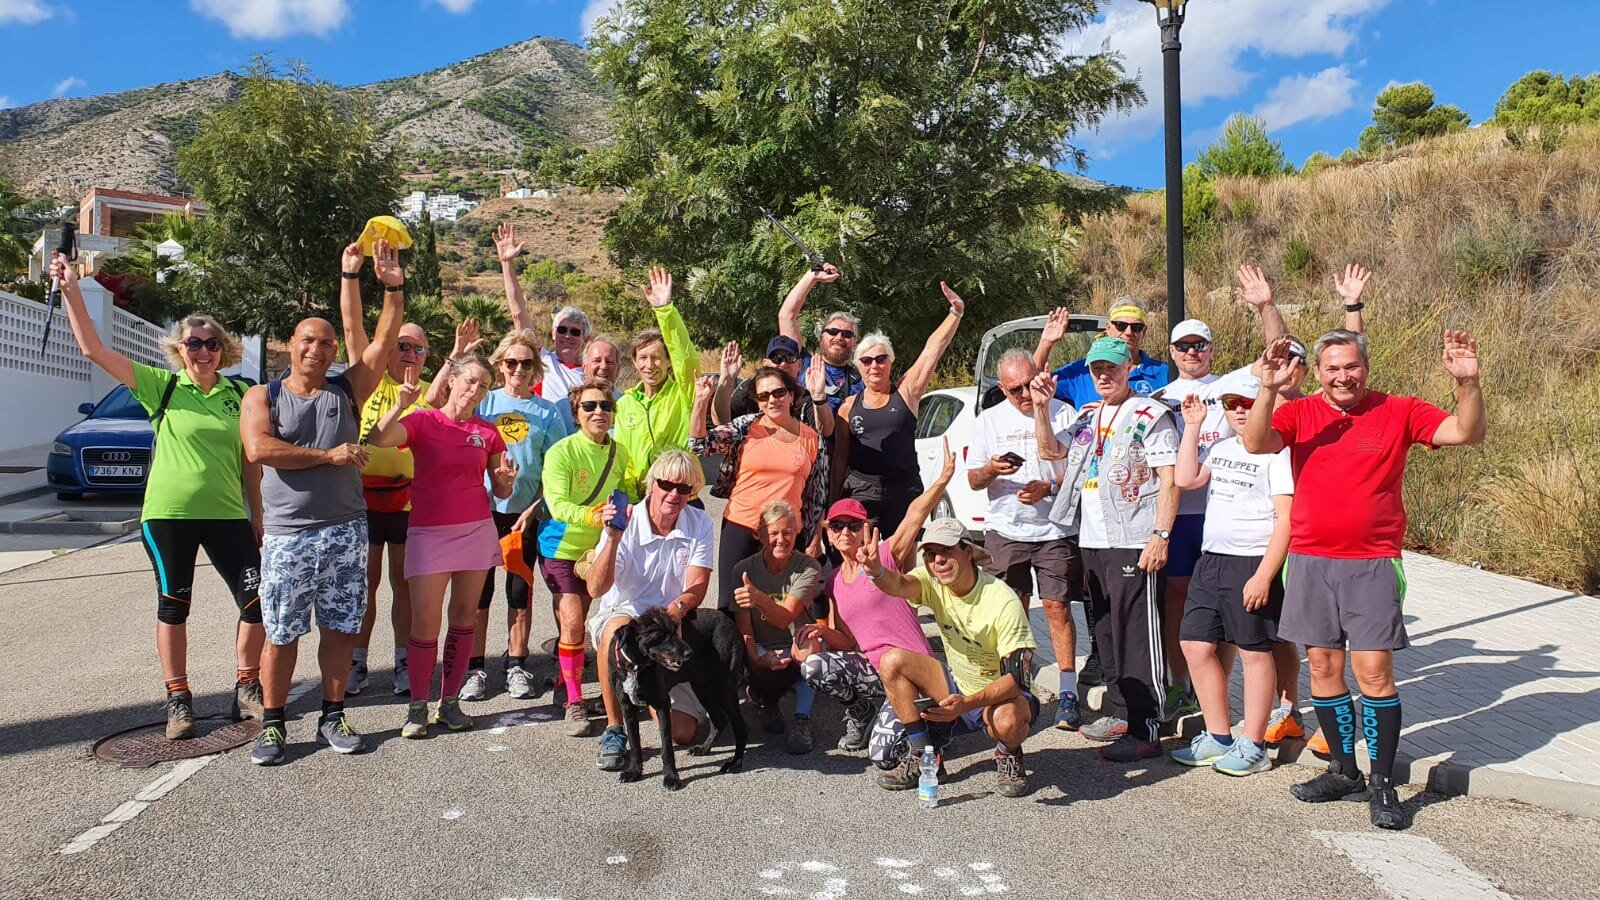 Mijas H3 - Hash Flash Golden Cascade - Run 1662 - 20 Oct 2019 - Photo  3.jpg